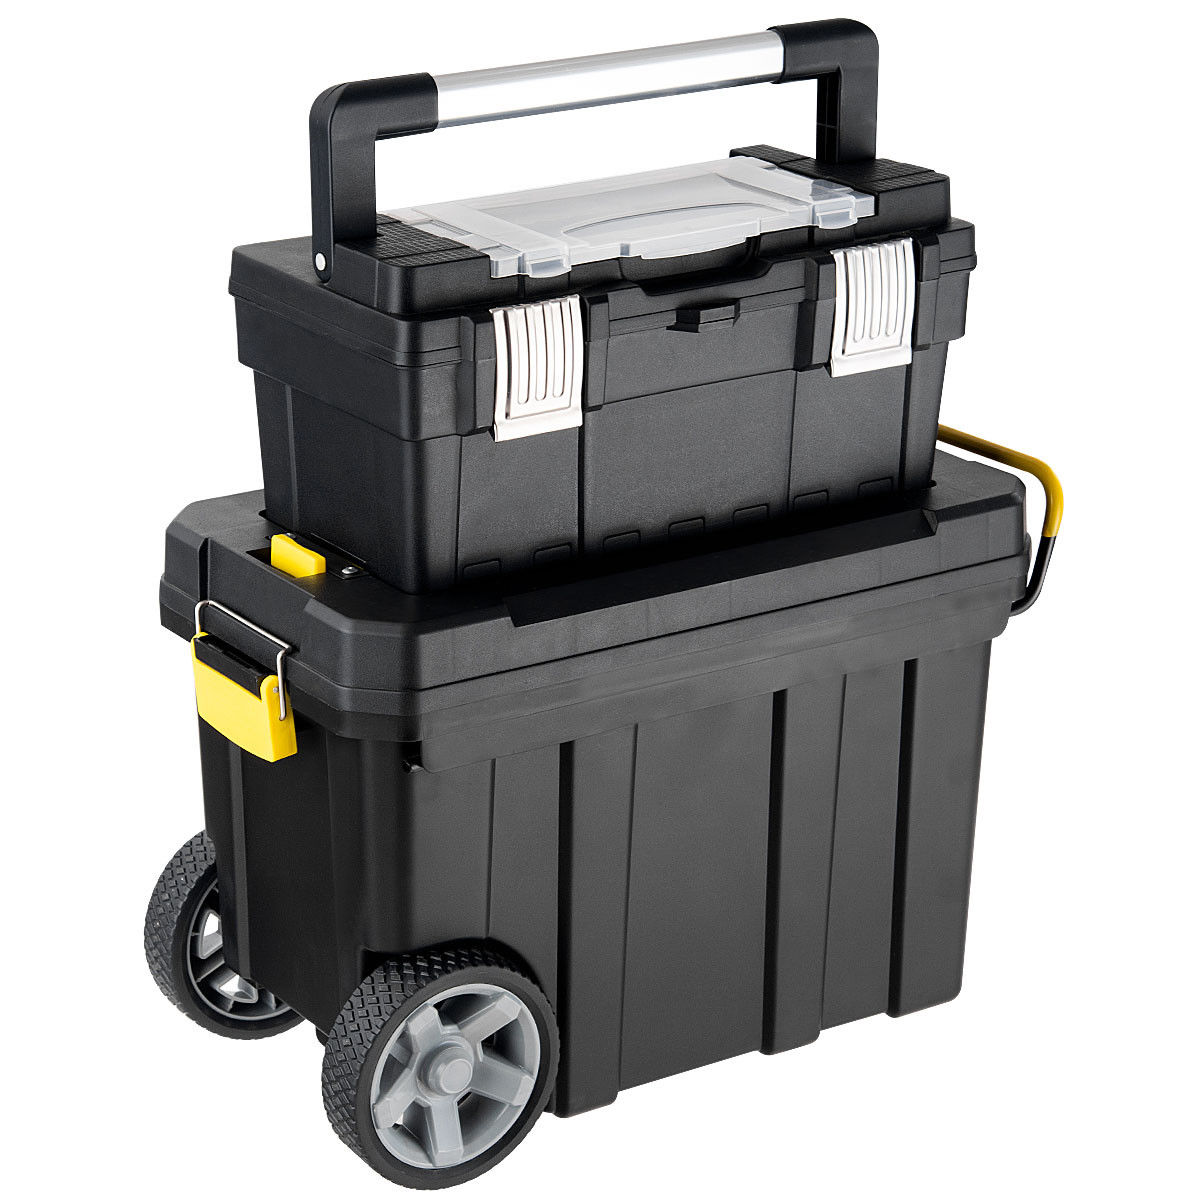 Costway 2-in-1 Rolling Tool Box Set Mobile Tool Chest Storage Organizer Portable Black